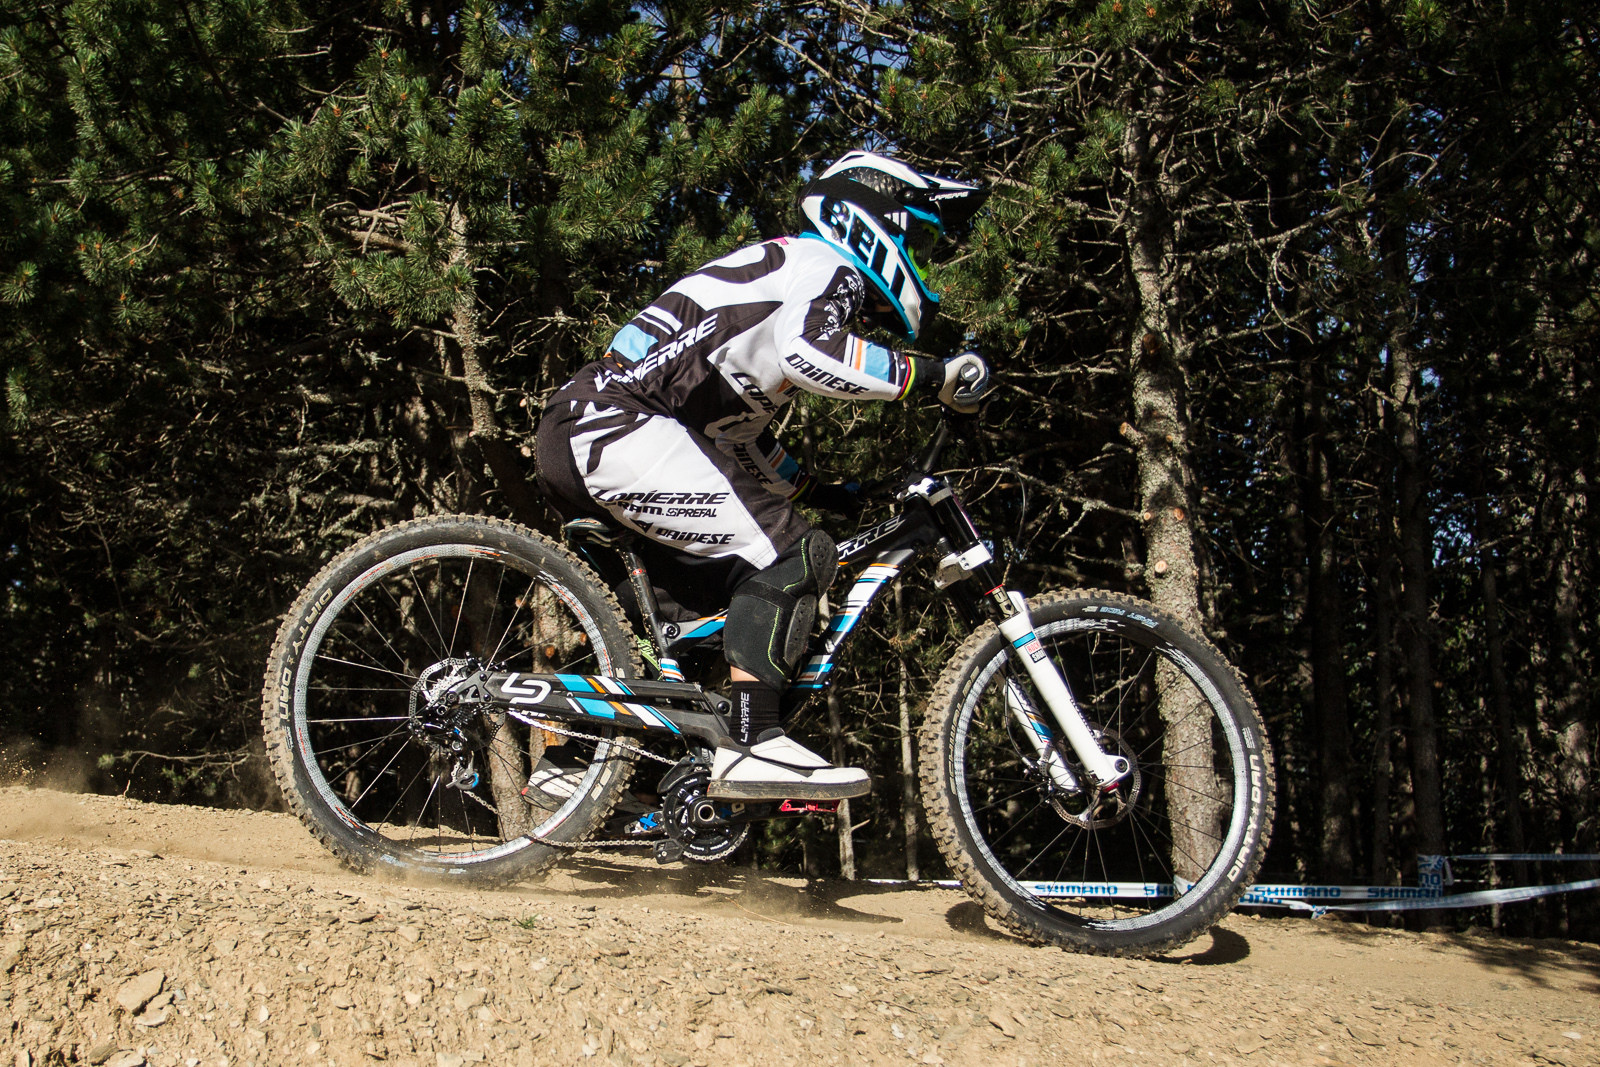 Lapierre DH920 G-Out at Andorra World Cup - G-Out Project: 2013 Andorra World Cup - Mountain Biking Pictures - Vital MTB